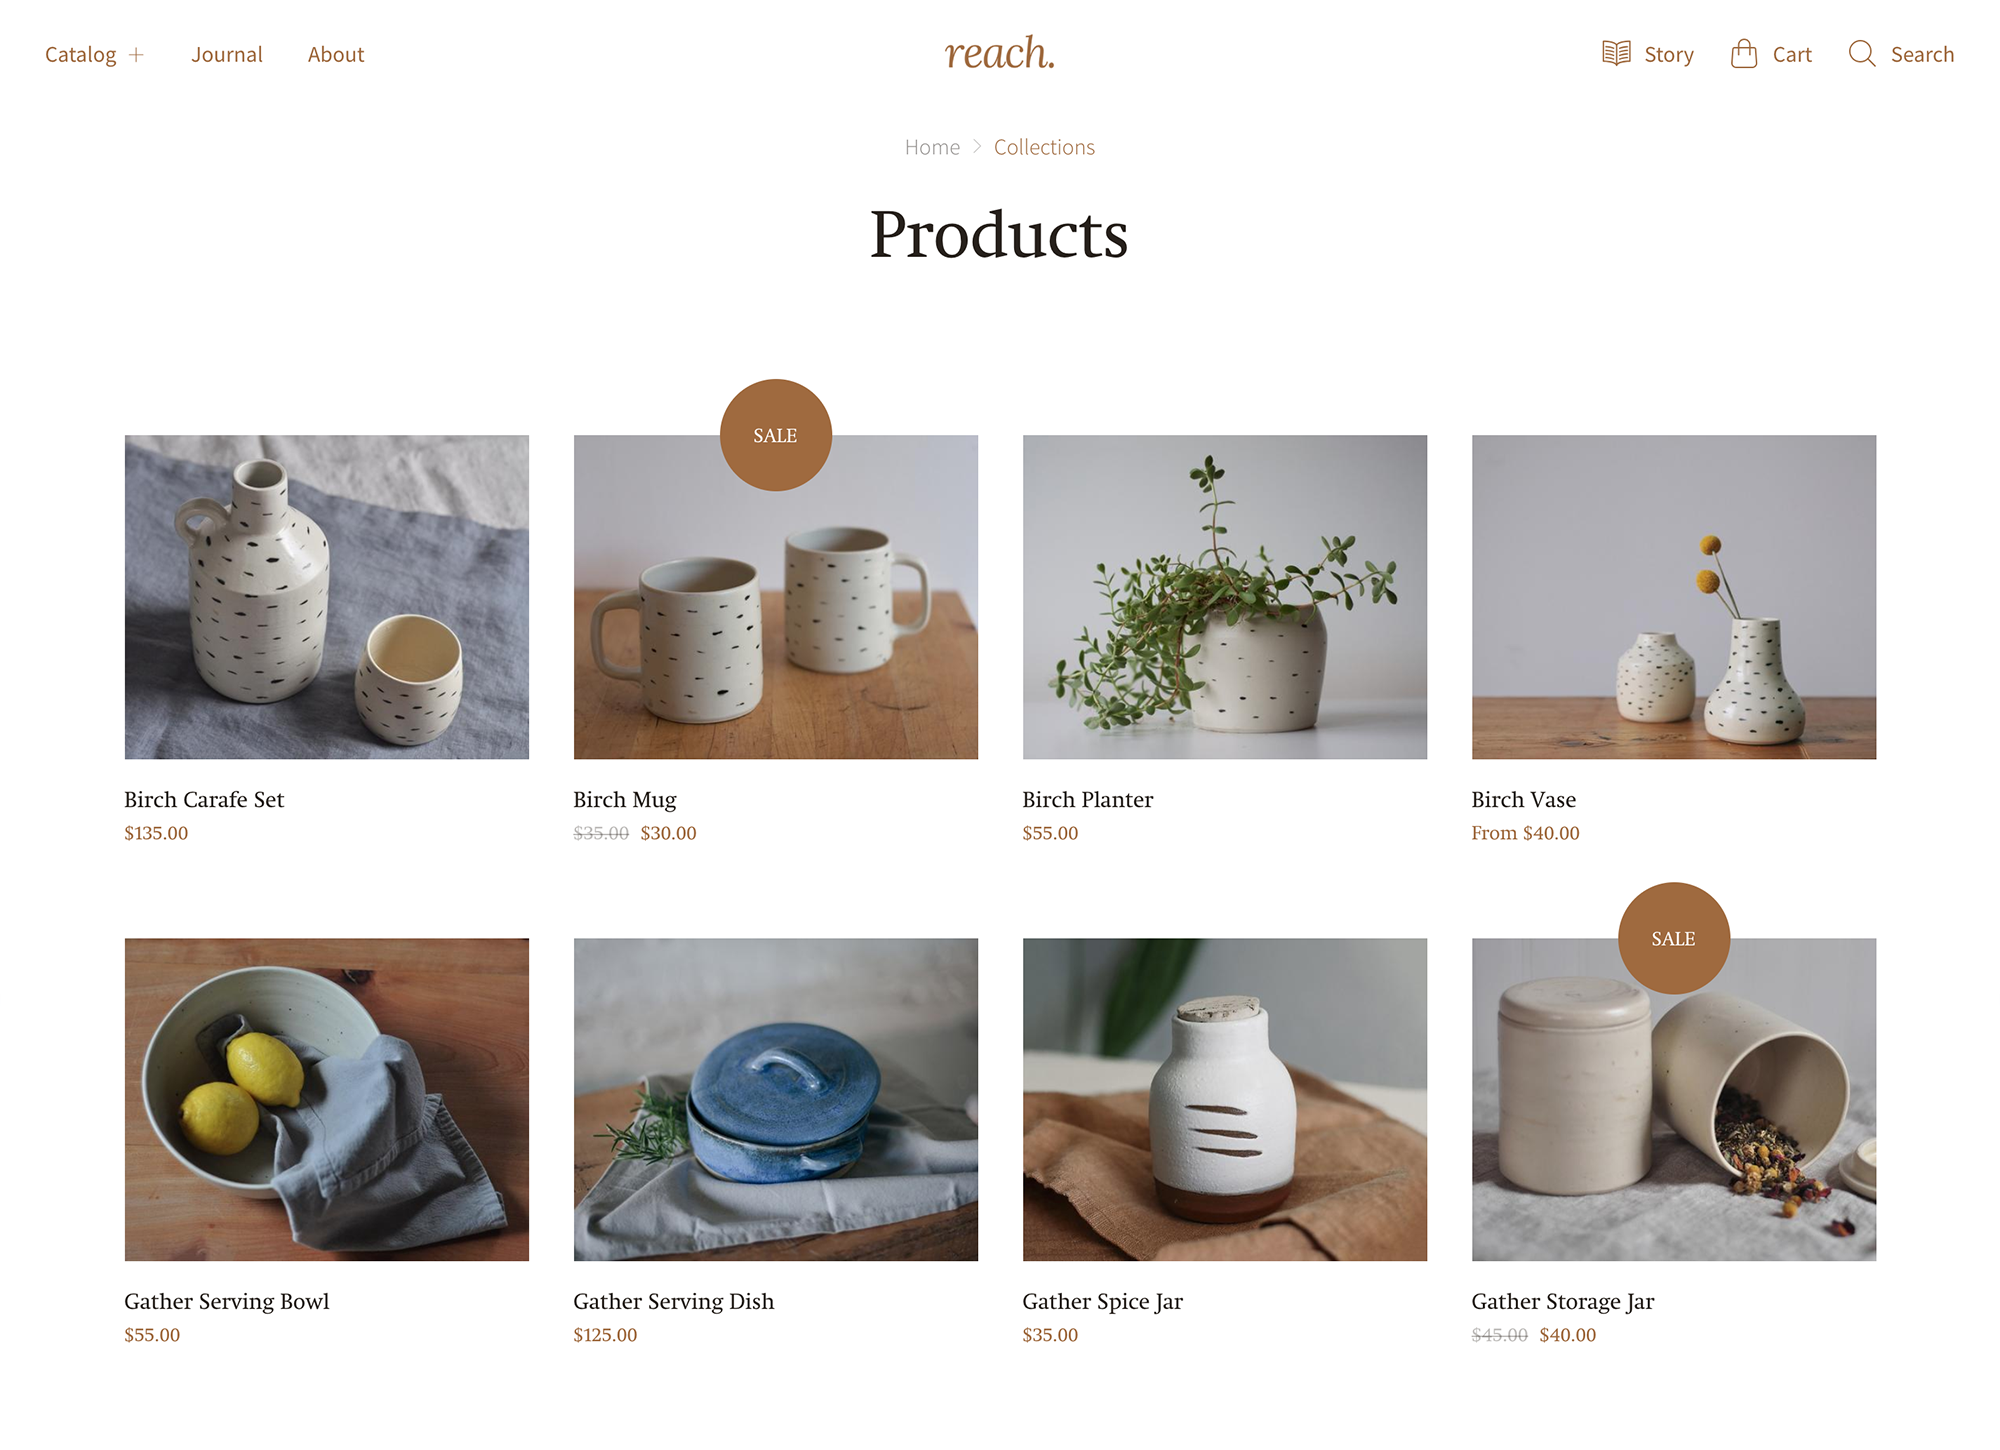 Reach Natural Shopify demo displaying product grid on collection page